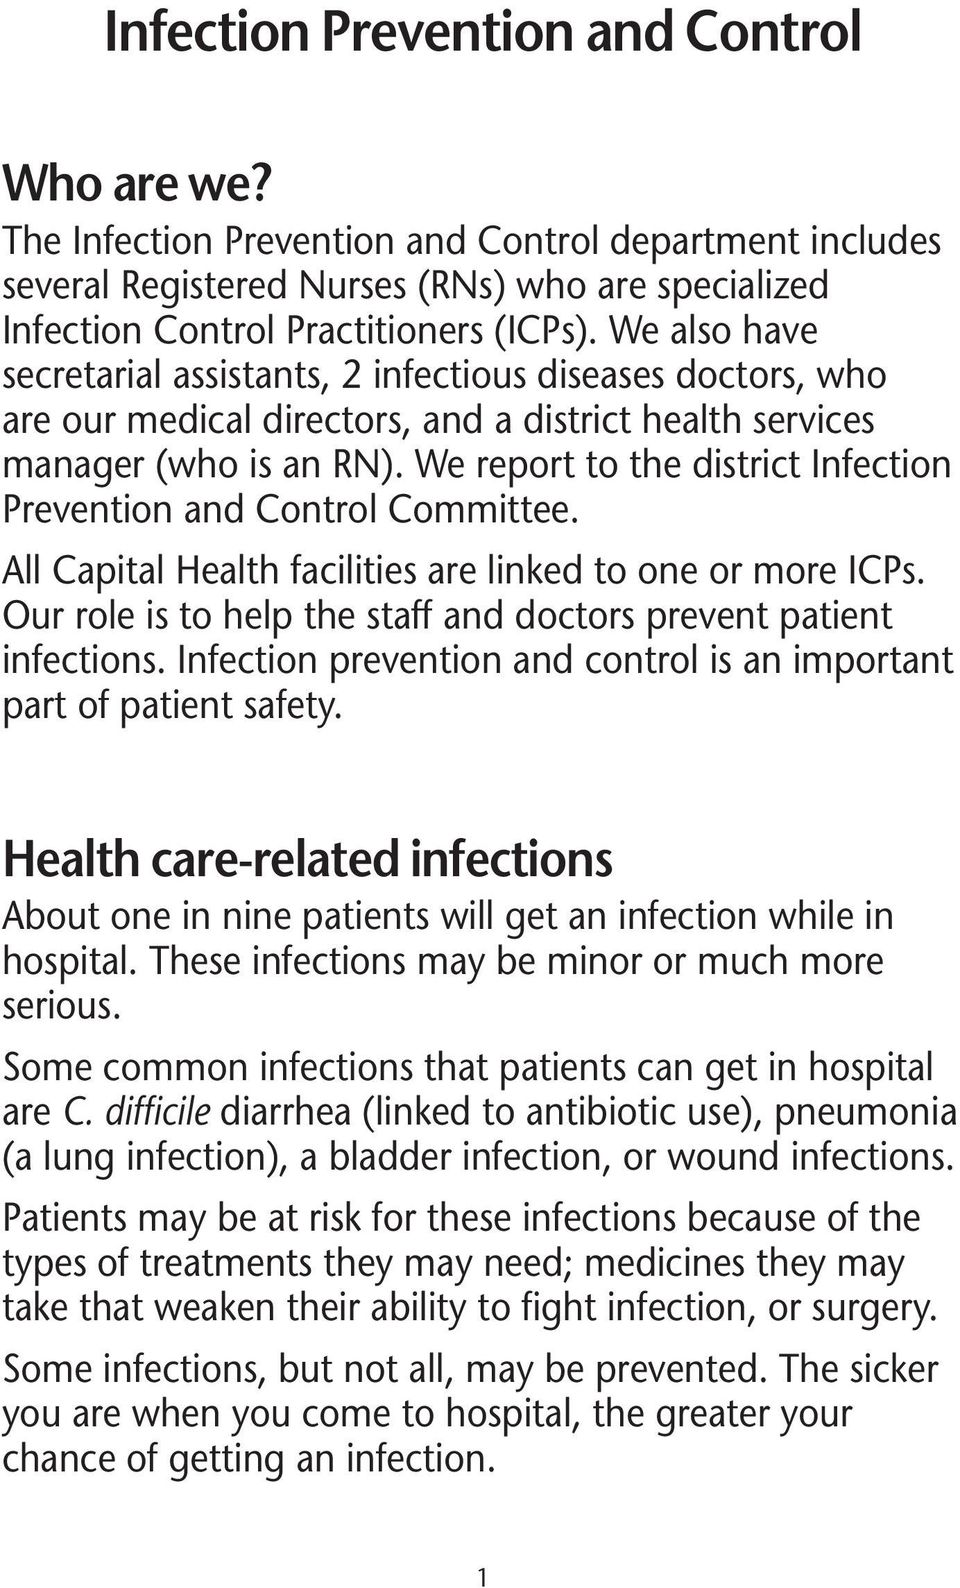 We report to the district Infection Prevention and Control Committee. All Capital Health facilities are linked to one or more ICPs.